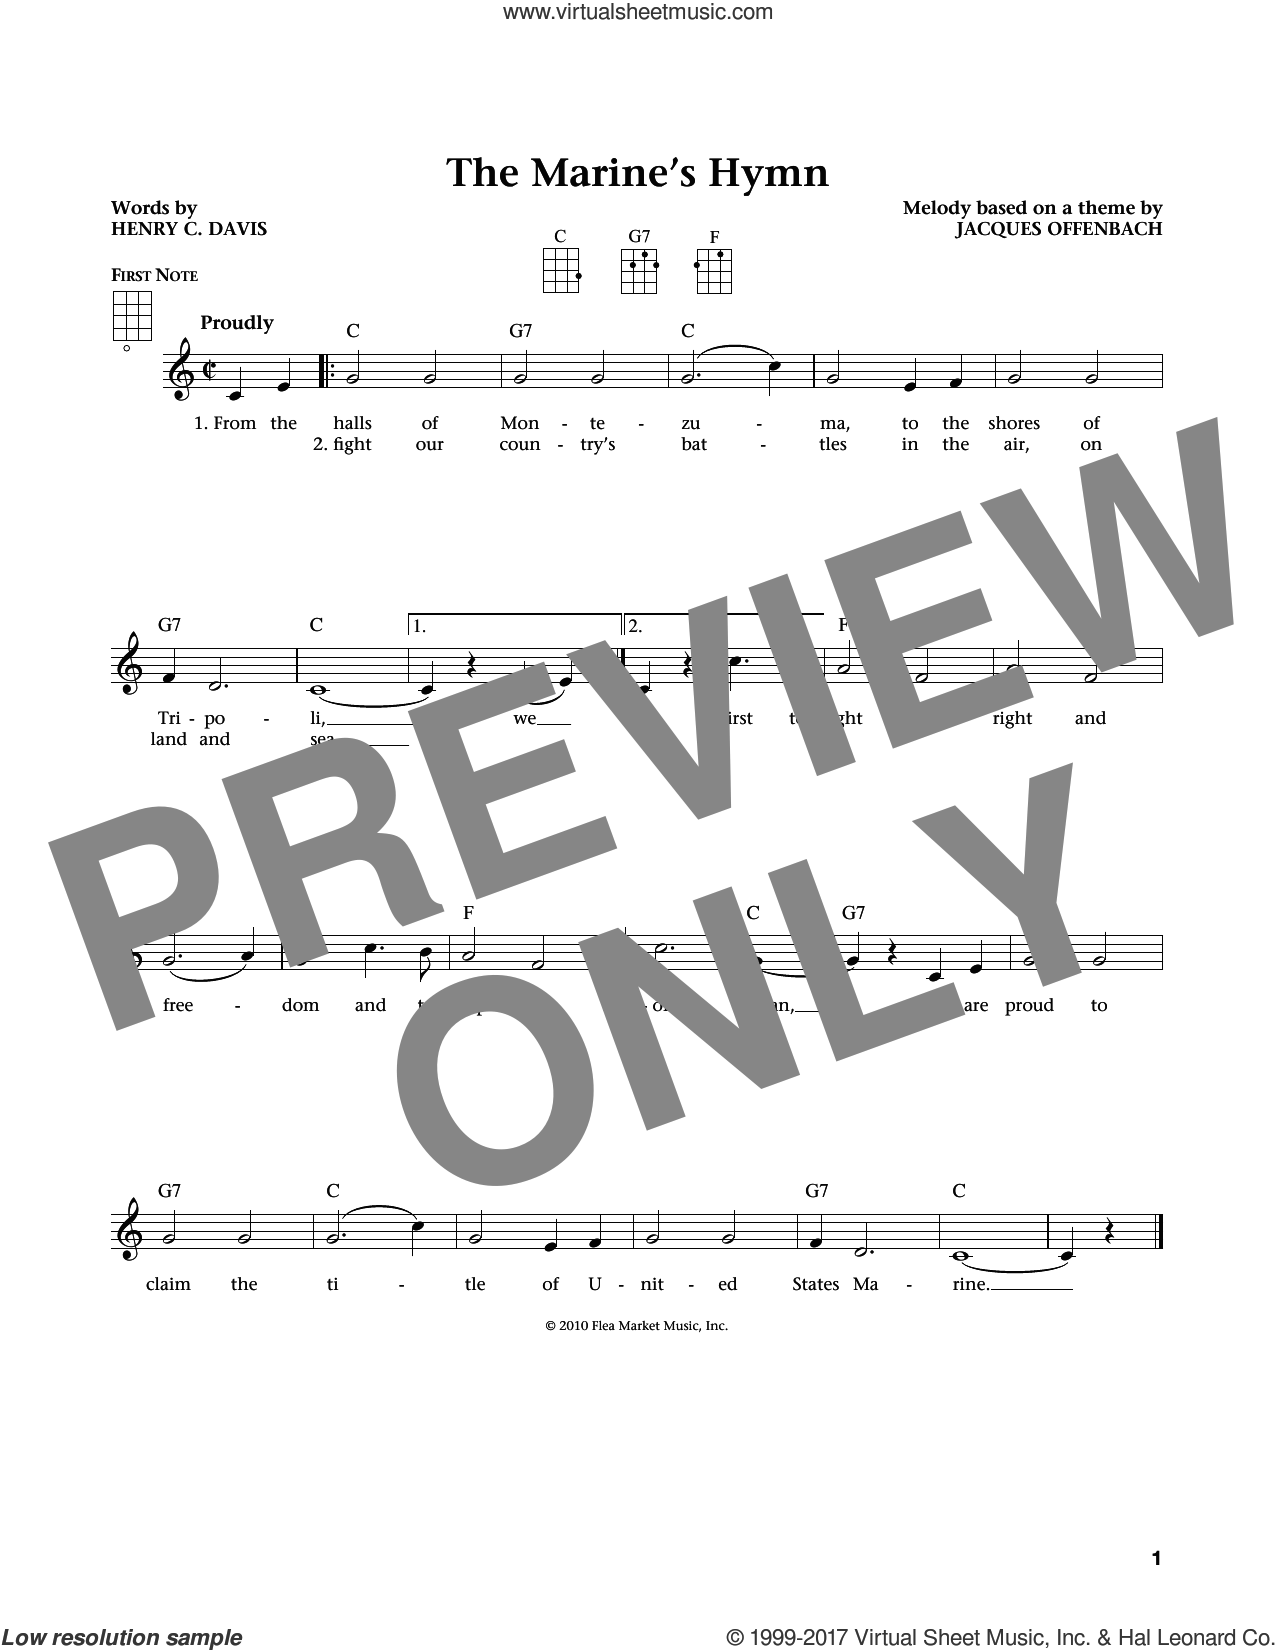 Marine's Hymn (from The Daily Ukulele) (arr. Liz and Jim Beloff) sheet music for ukulele by Jacques Offenbach, Jim Beloff, Liz Beloff and Henry C. Davis, intermediate skill level